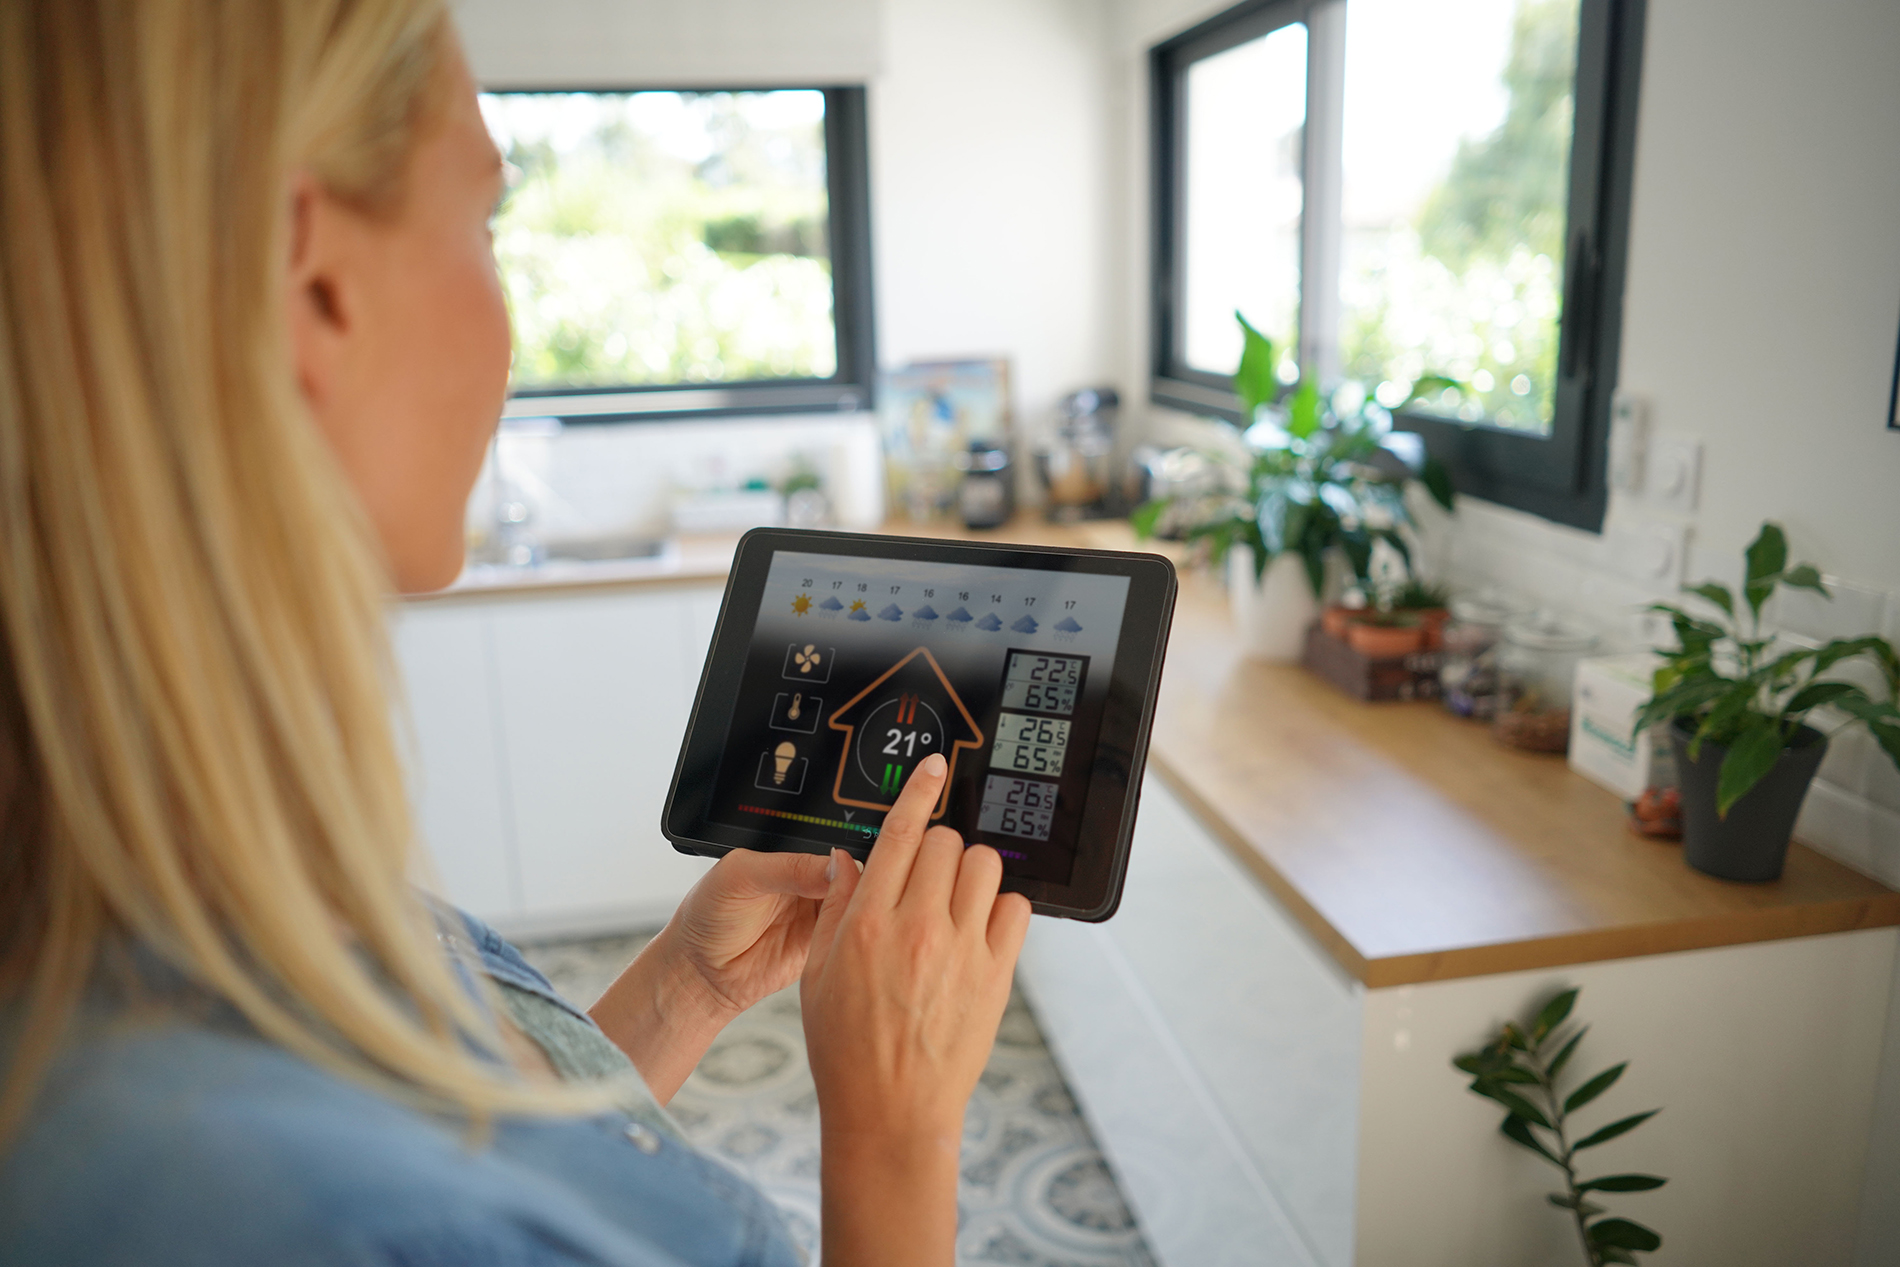 Should you DIY your smart home or hire a pro?